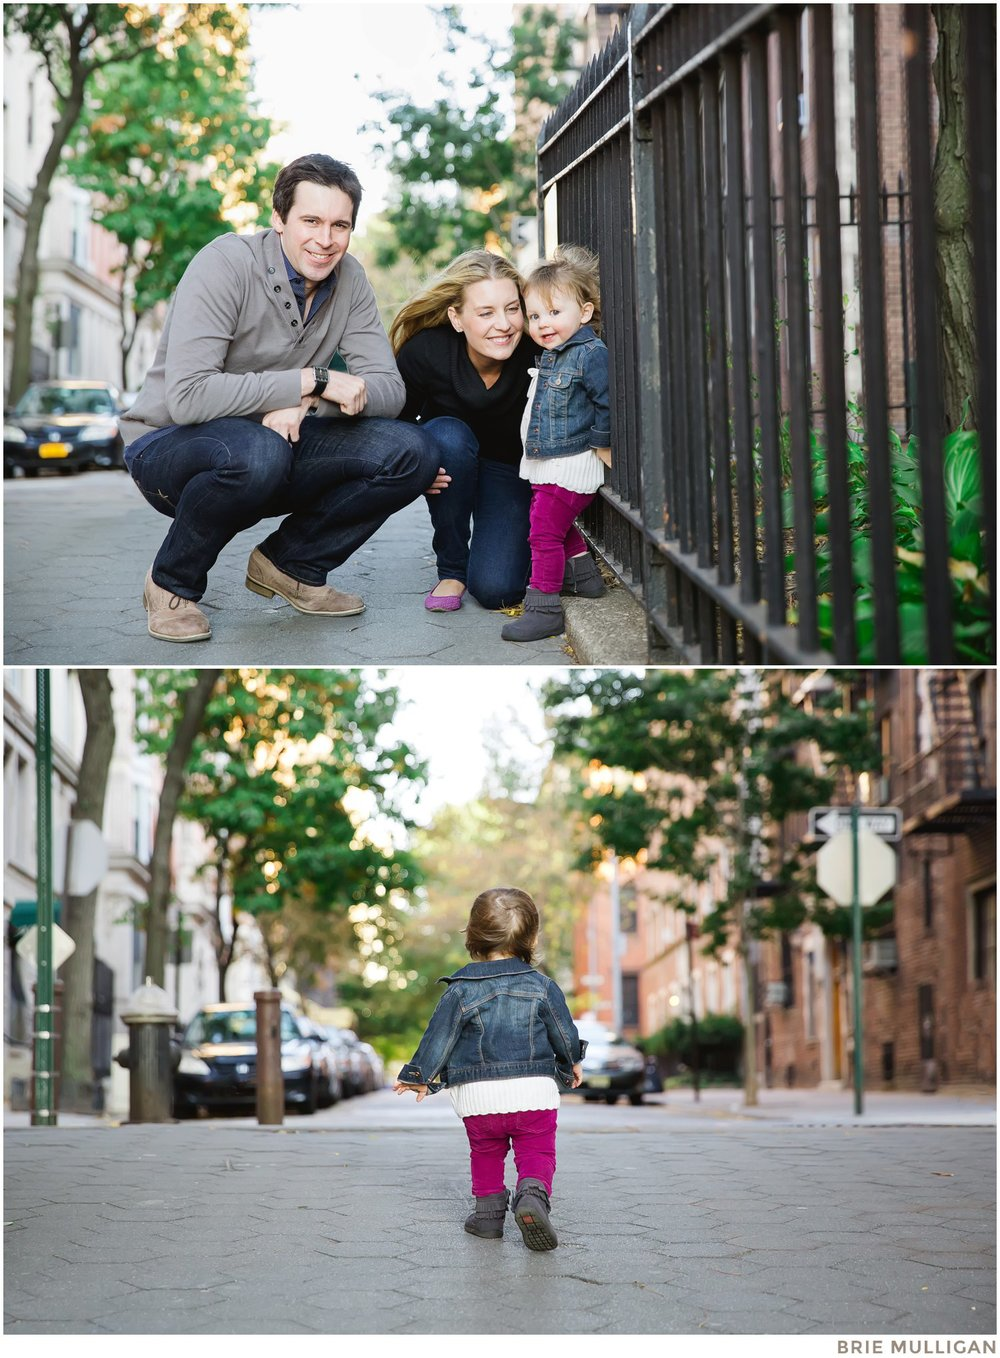 Brie-Mulligan-Lifestyle-Family-Photographer-Brooklyn-NY_0210.jpg